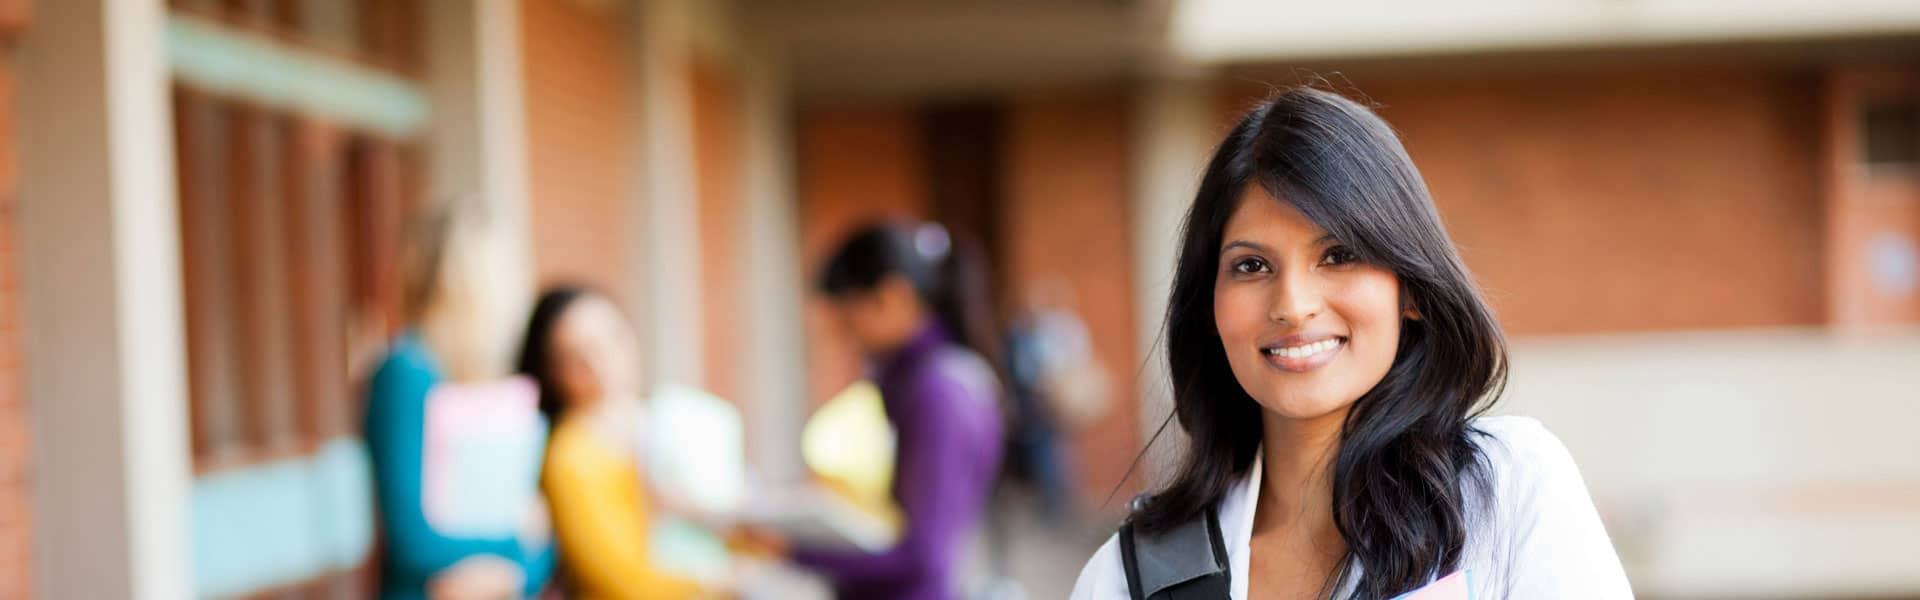 Admission Guidance - Global Opportunities